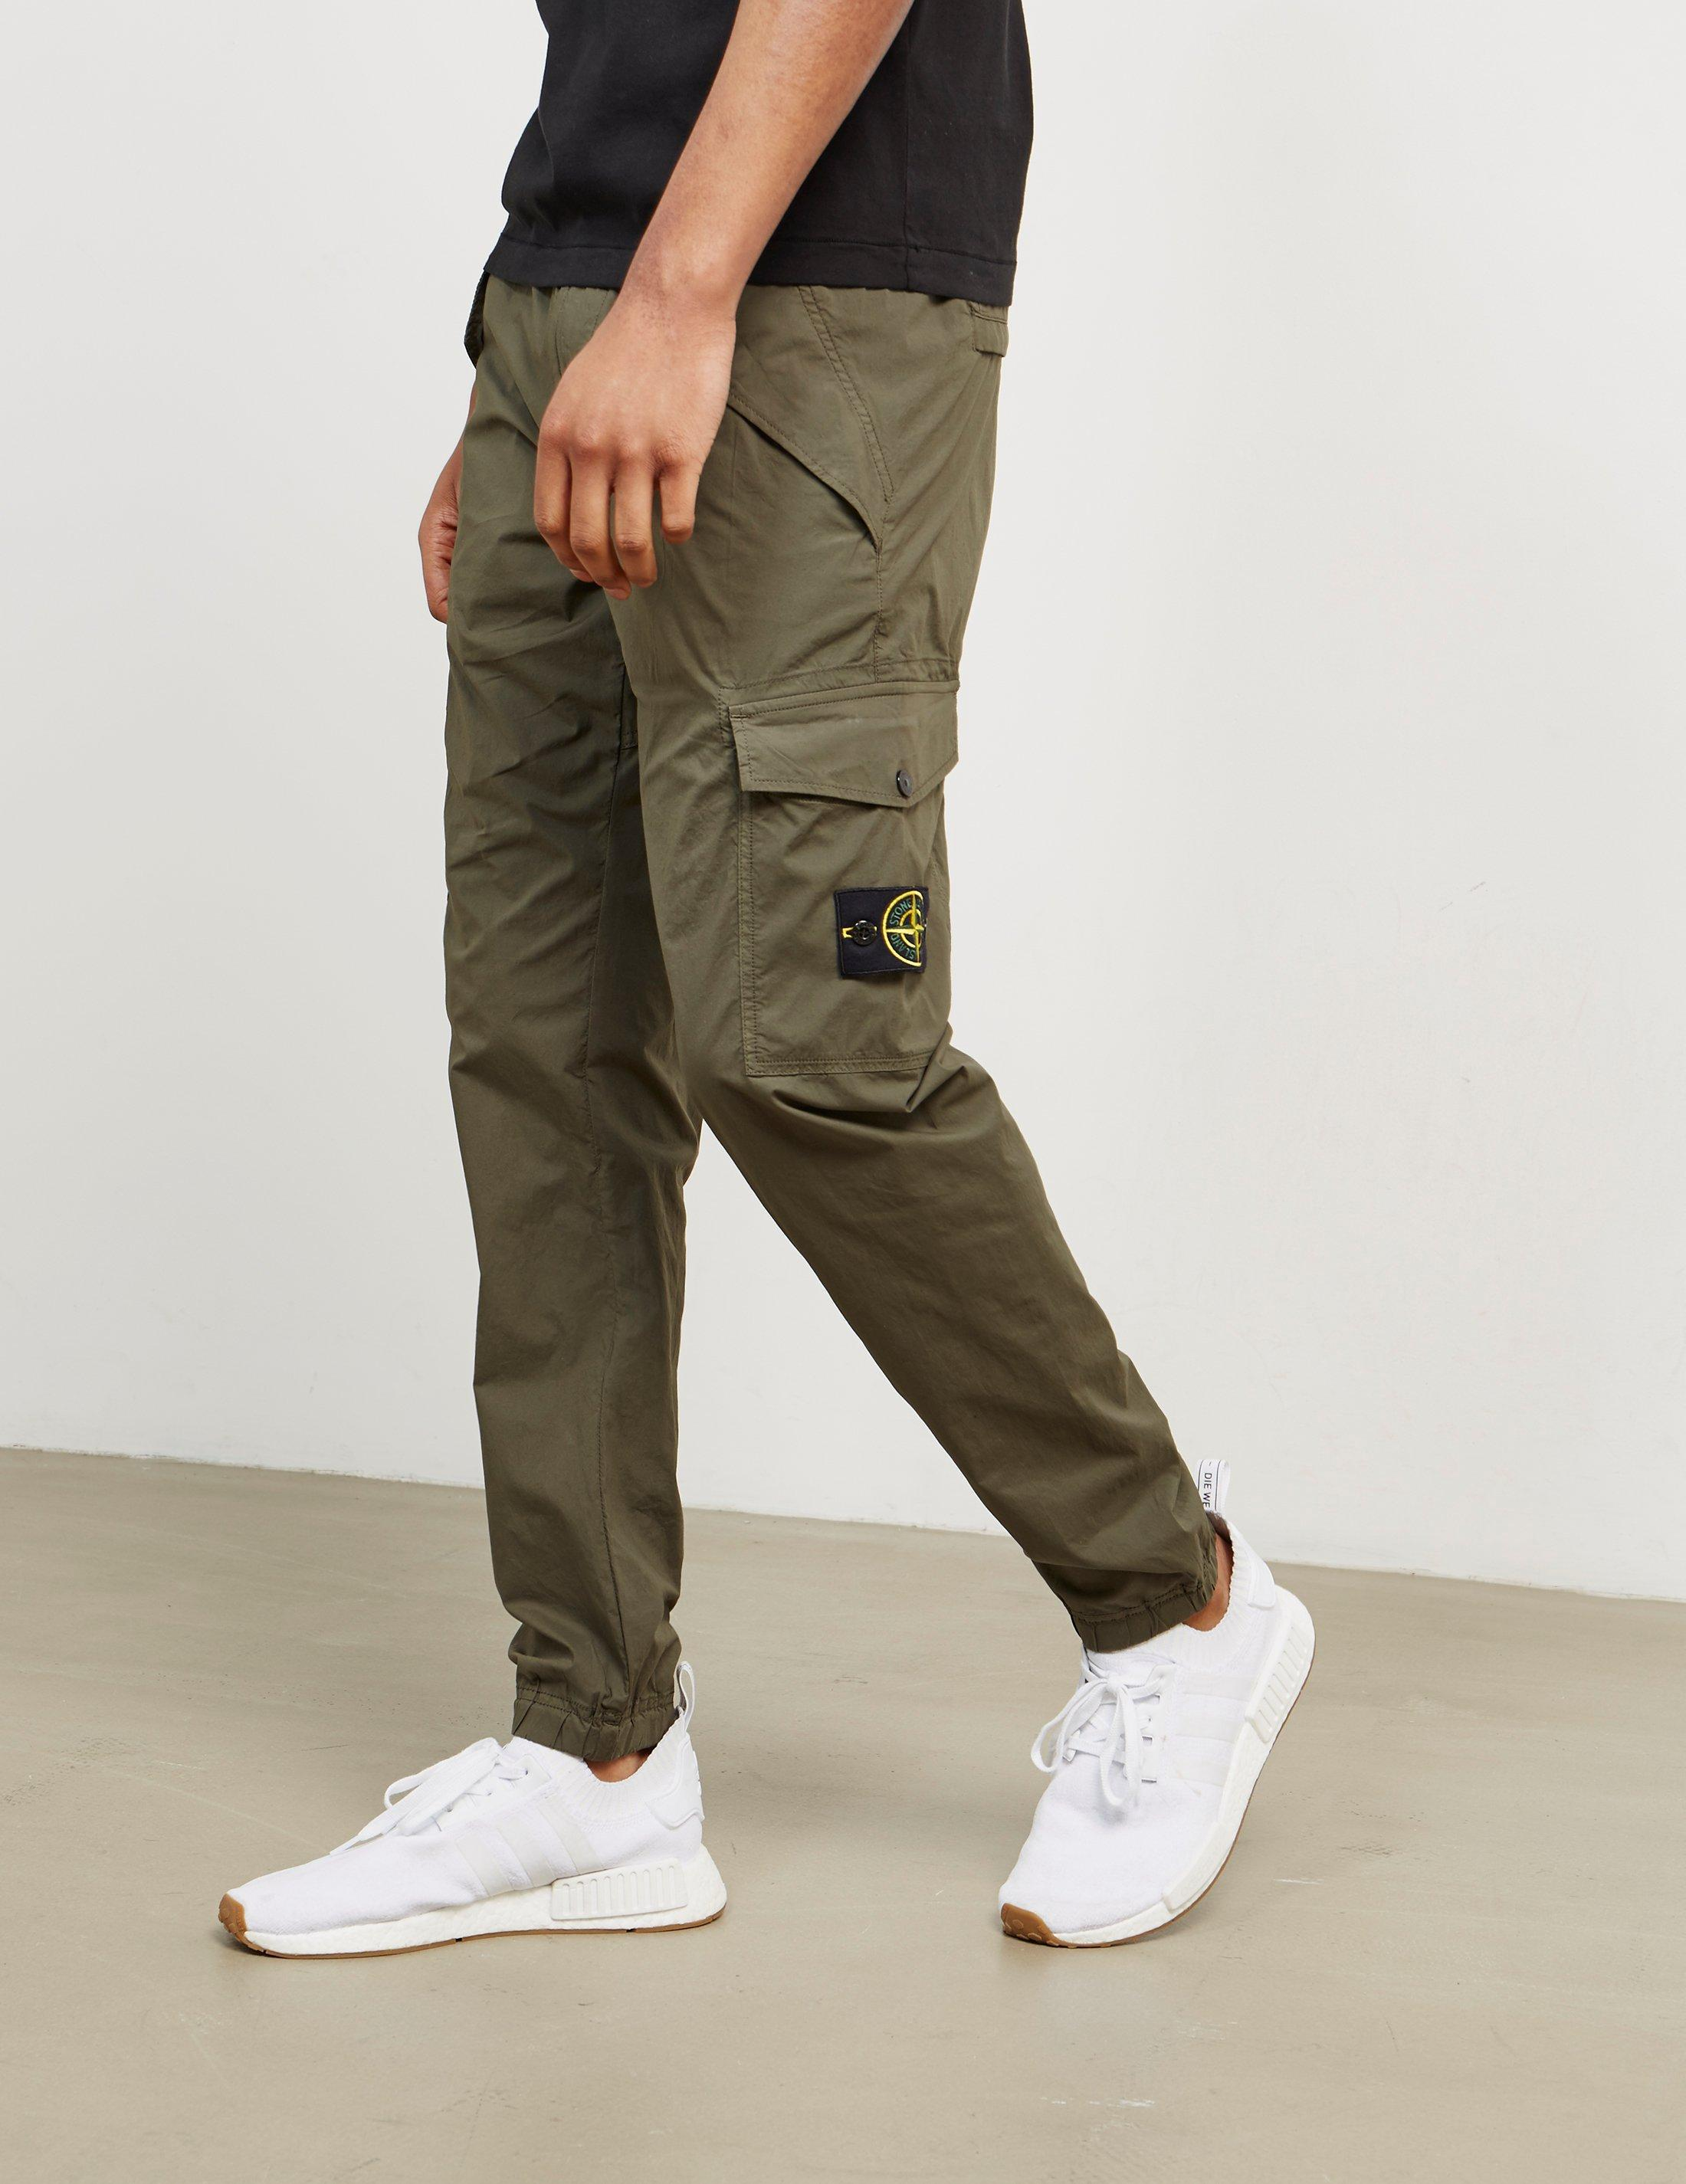 outlet for sale great discount sale finest selection Stone Island Cotton Mens Cargo Pants Green for Men - Lyst